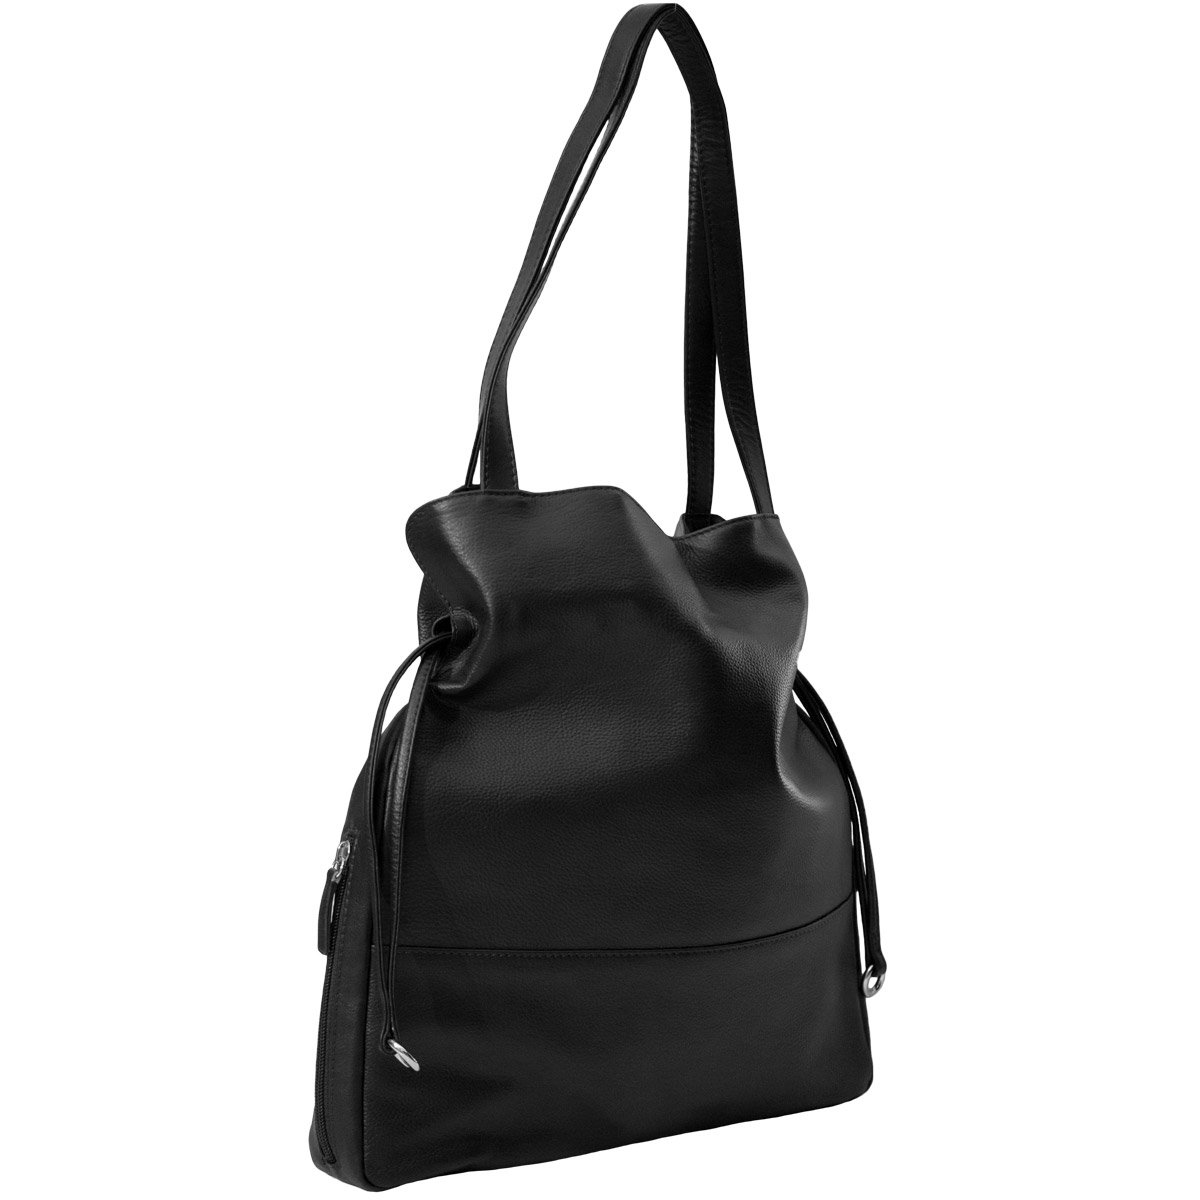 e02118fb017f CTM Women's Leather Tote Handbag with Cosmetic Case, Black